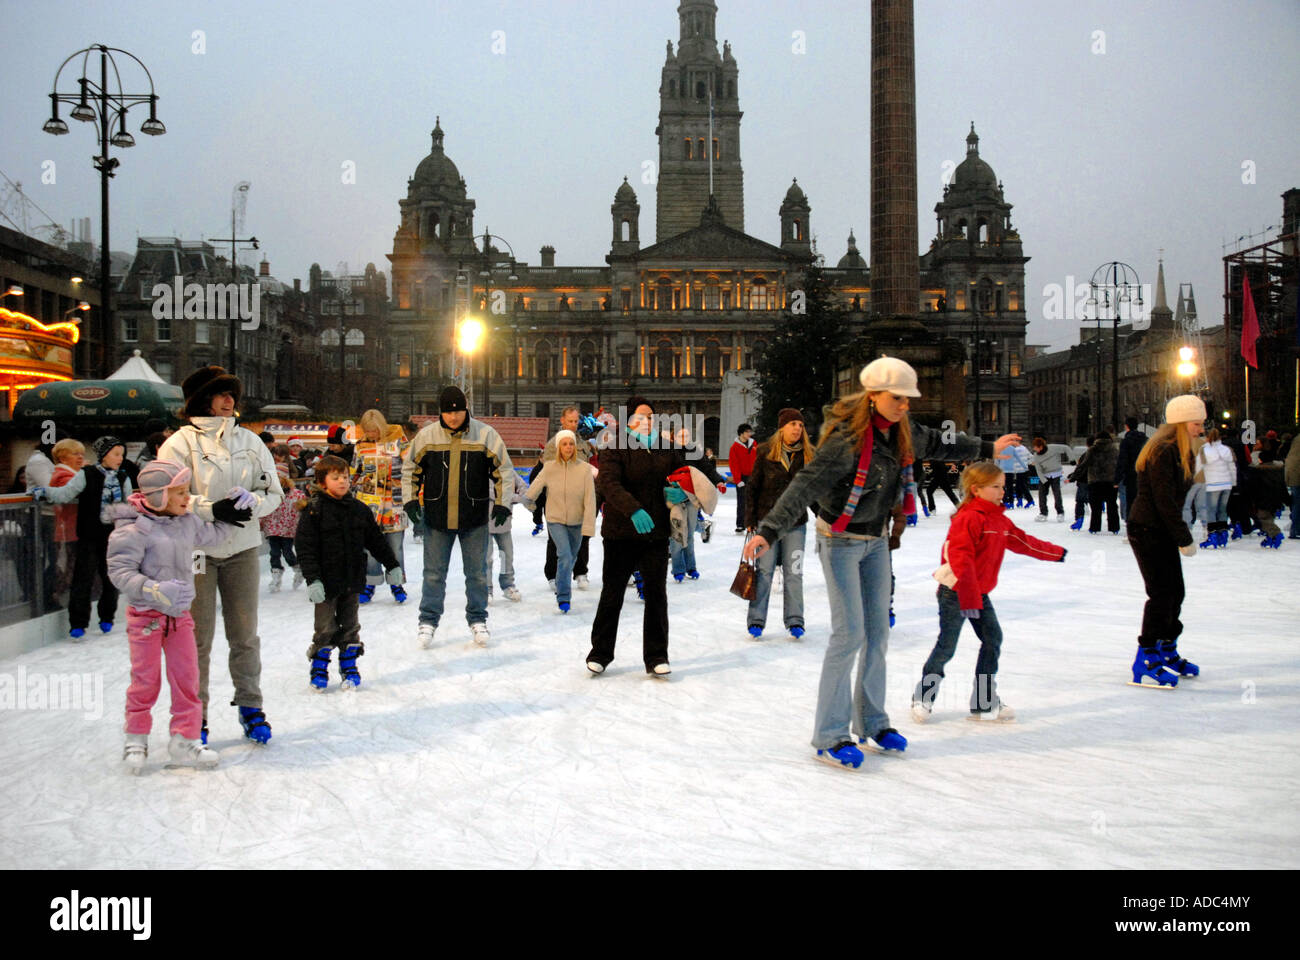 ice skating on outdoor ice rink george square city chambers in